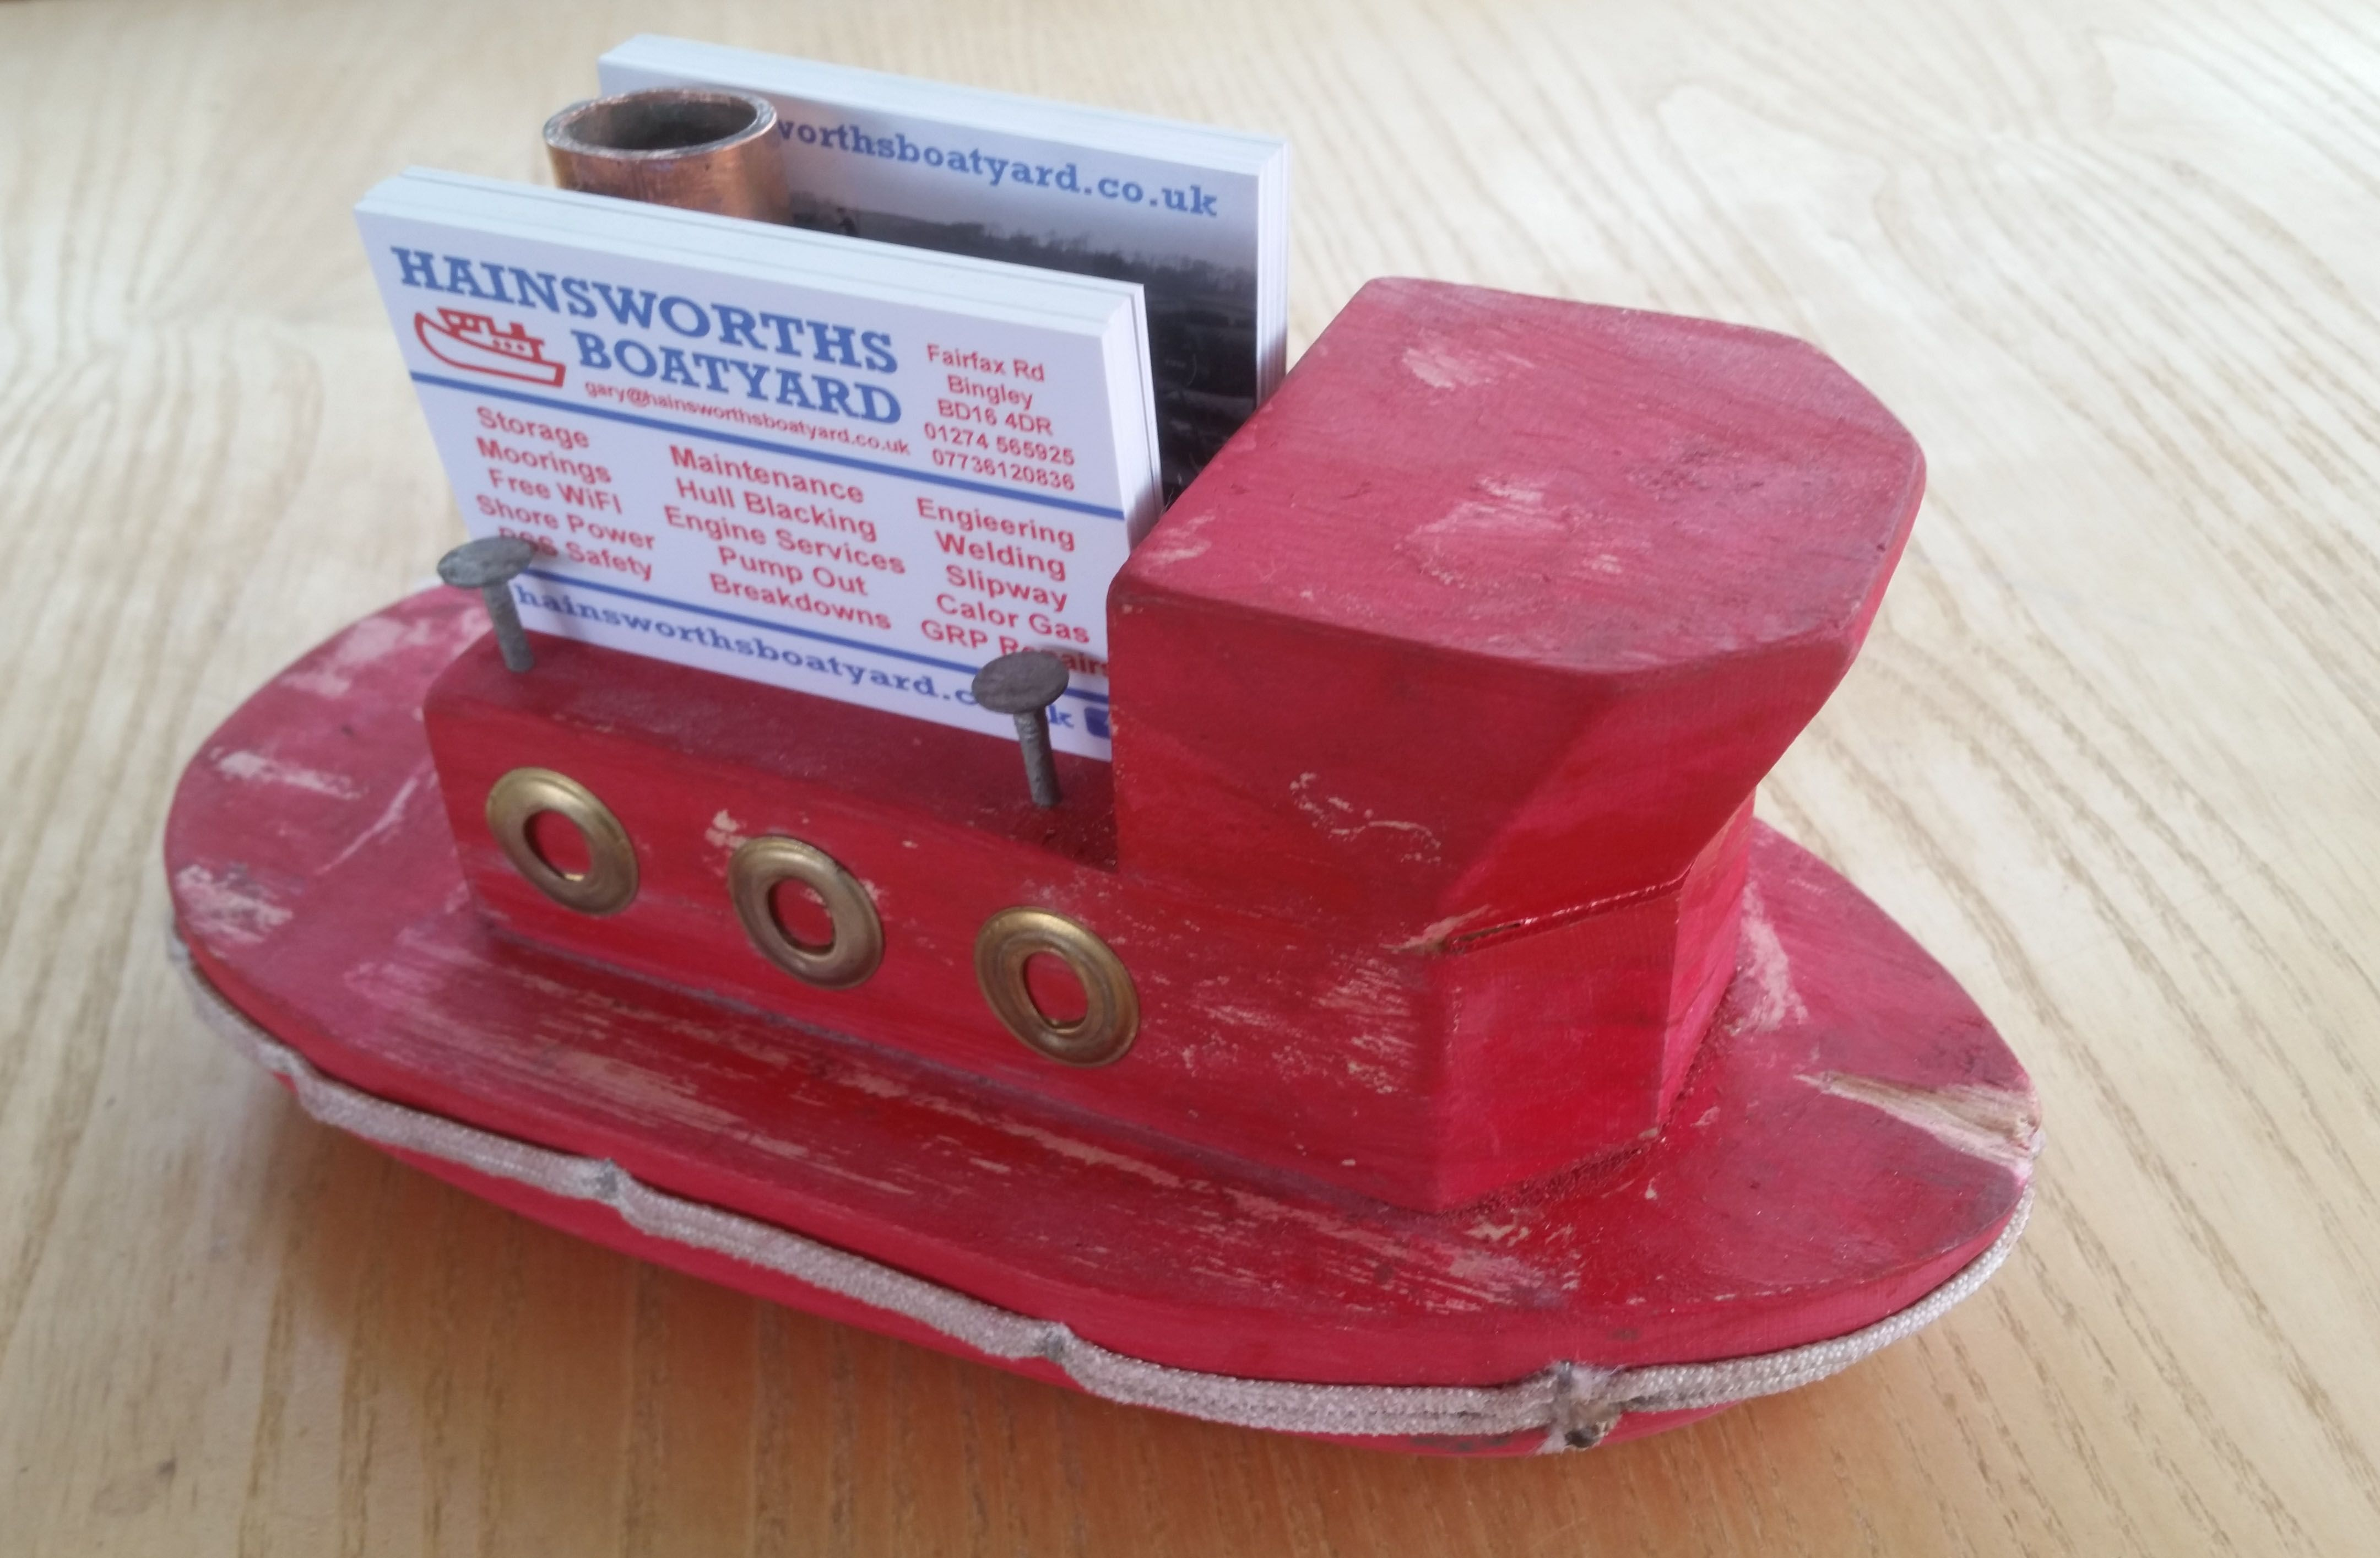 Business Card Holder Painted Red Wood Toy Tug Boat Business Card Holders Wood Toys Tug Boats